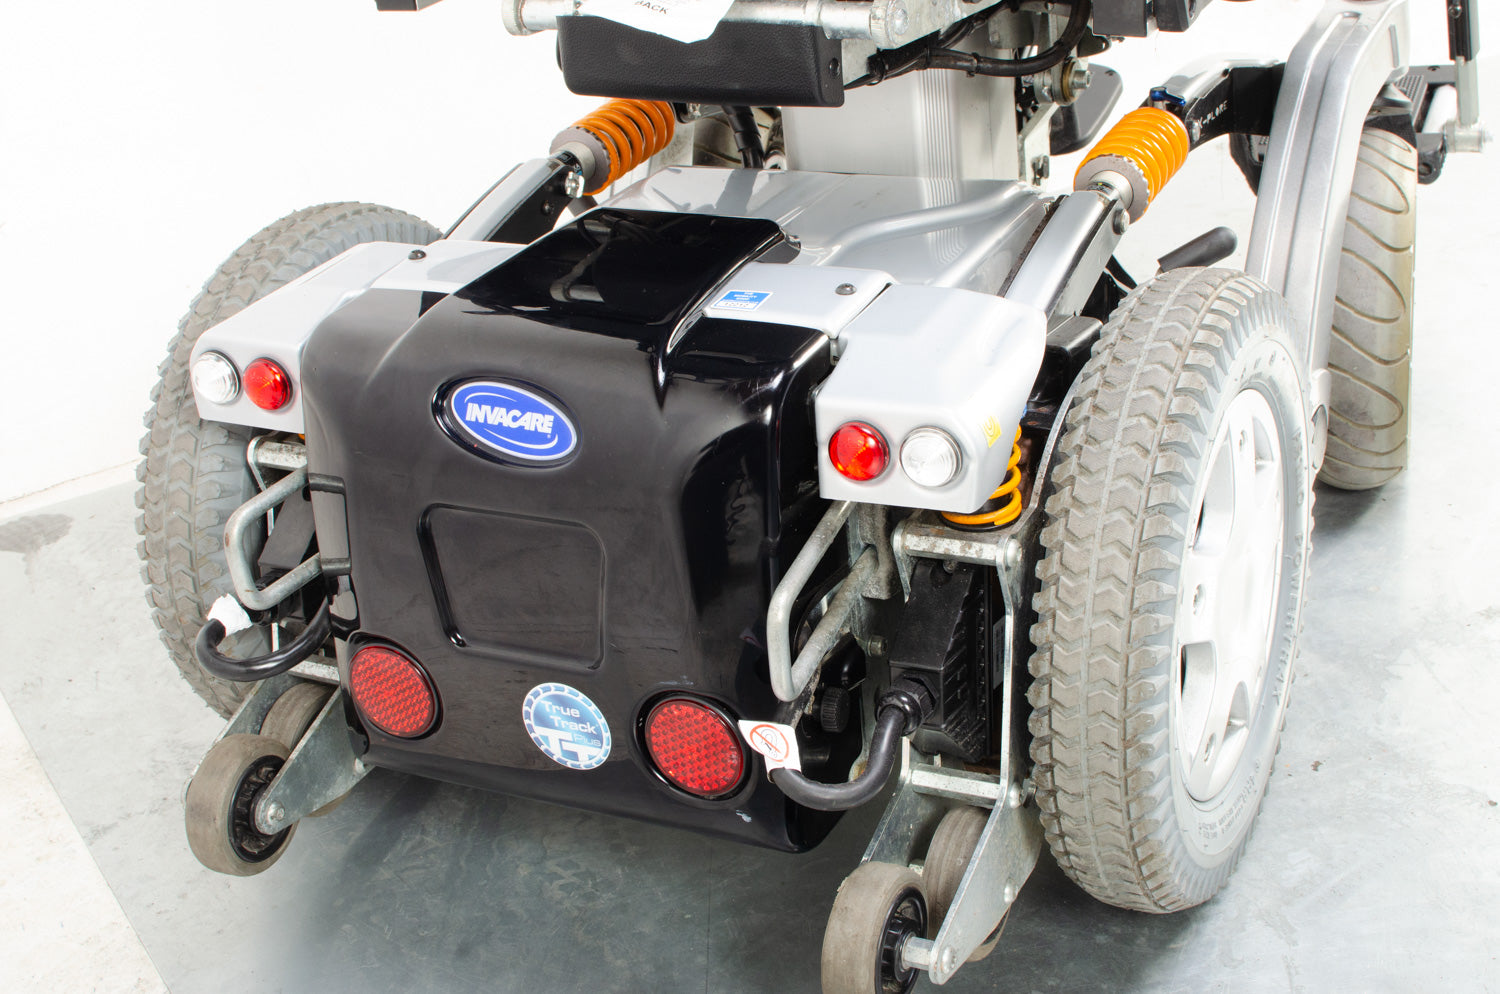 Invacare Storm 4 X-Plore 8mph Powered Wheelchair with Electric Tilt Function All Terrain Powerchair